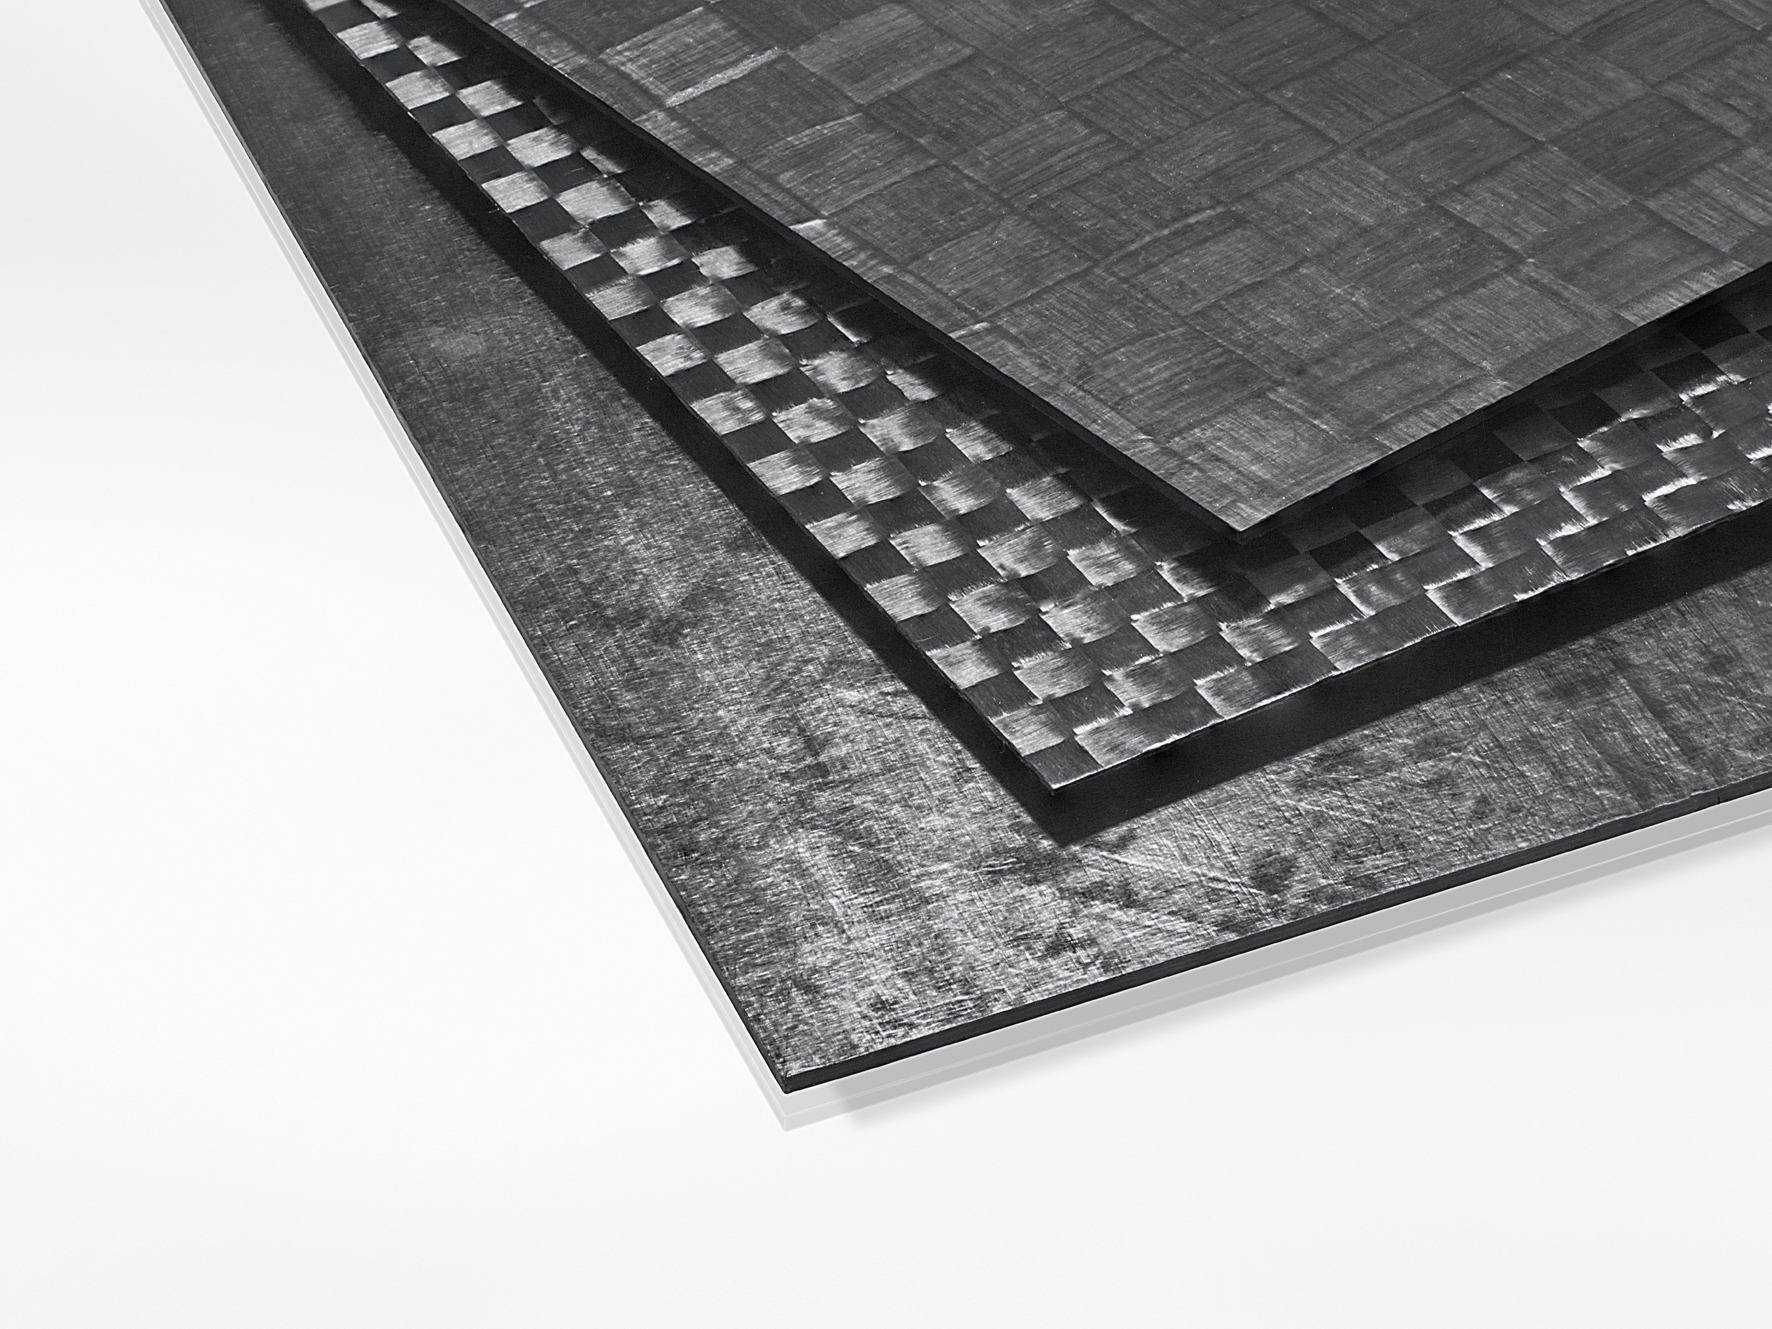 Carbon fiber reinforced organic sheet with thermoplastic-compatible sizing